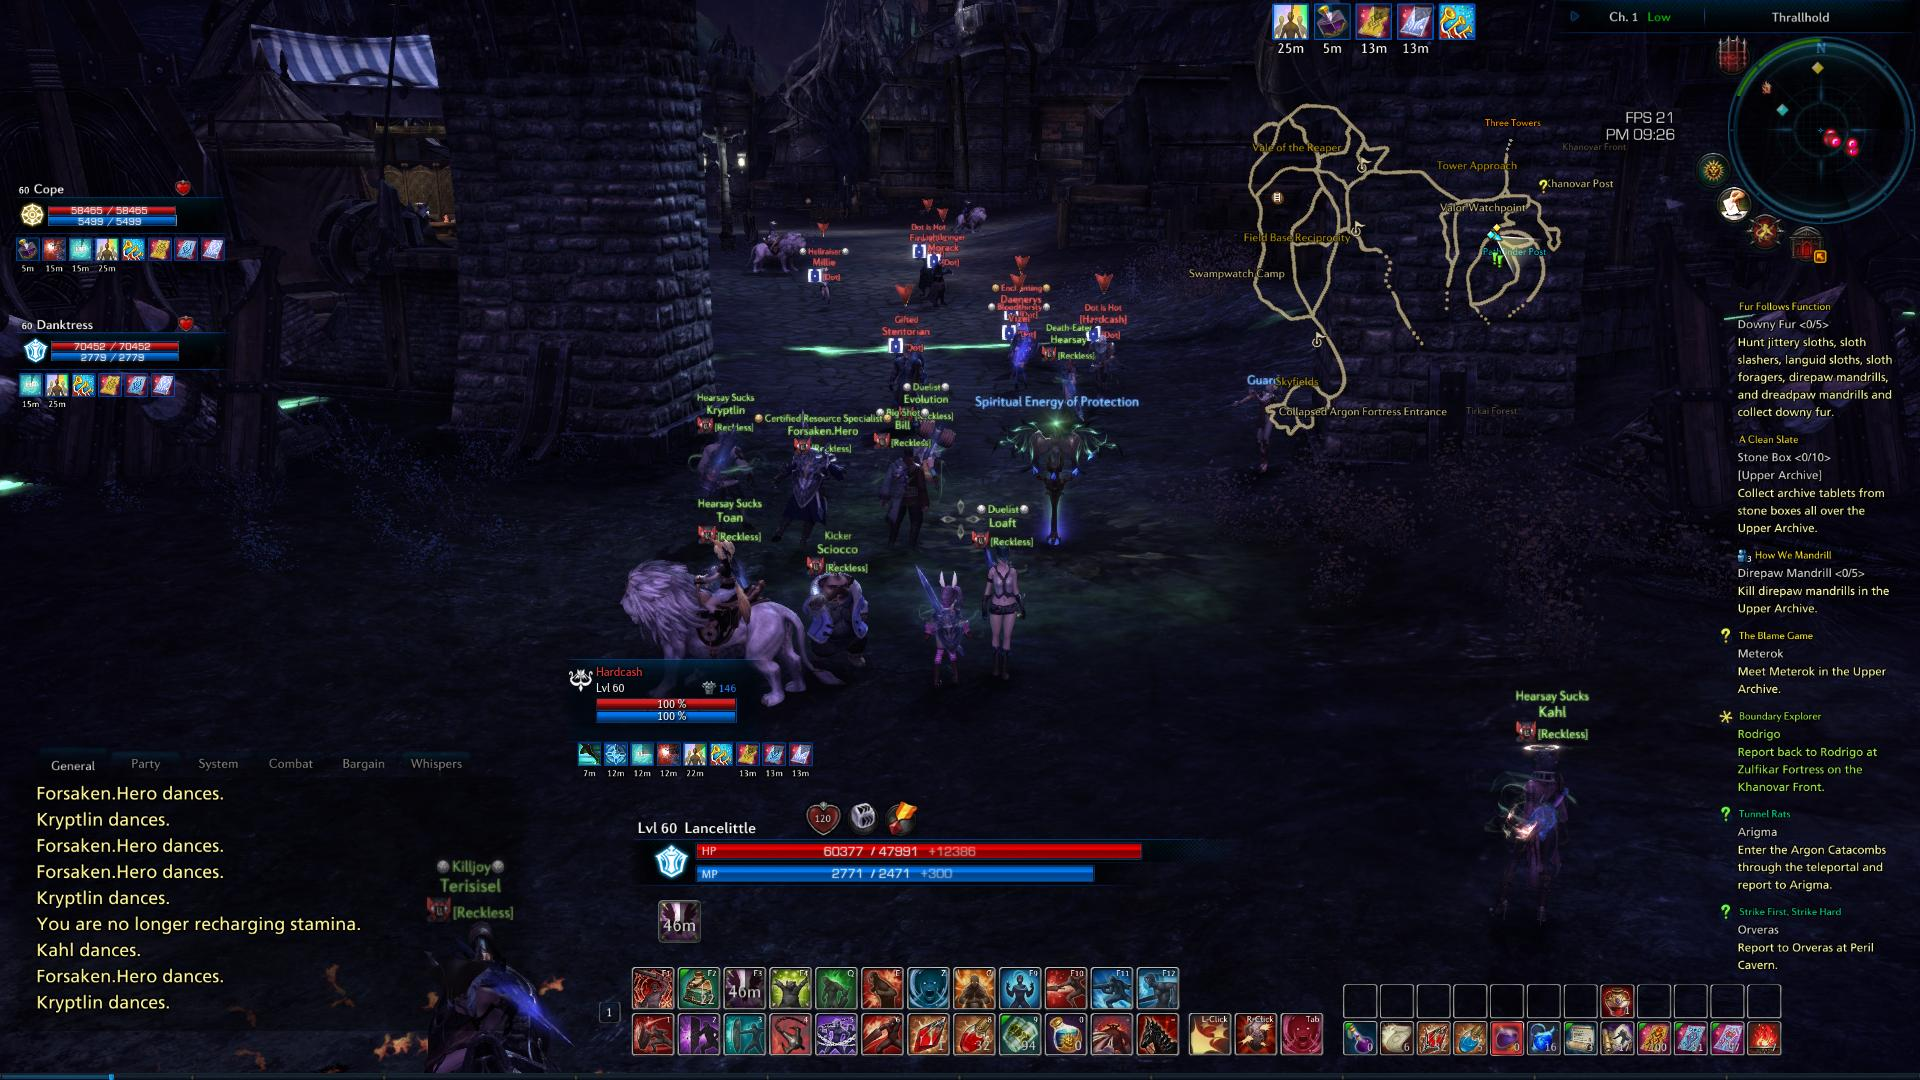 madpersian games opening gameplay trailer experience preview online media removed heres tera